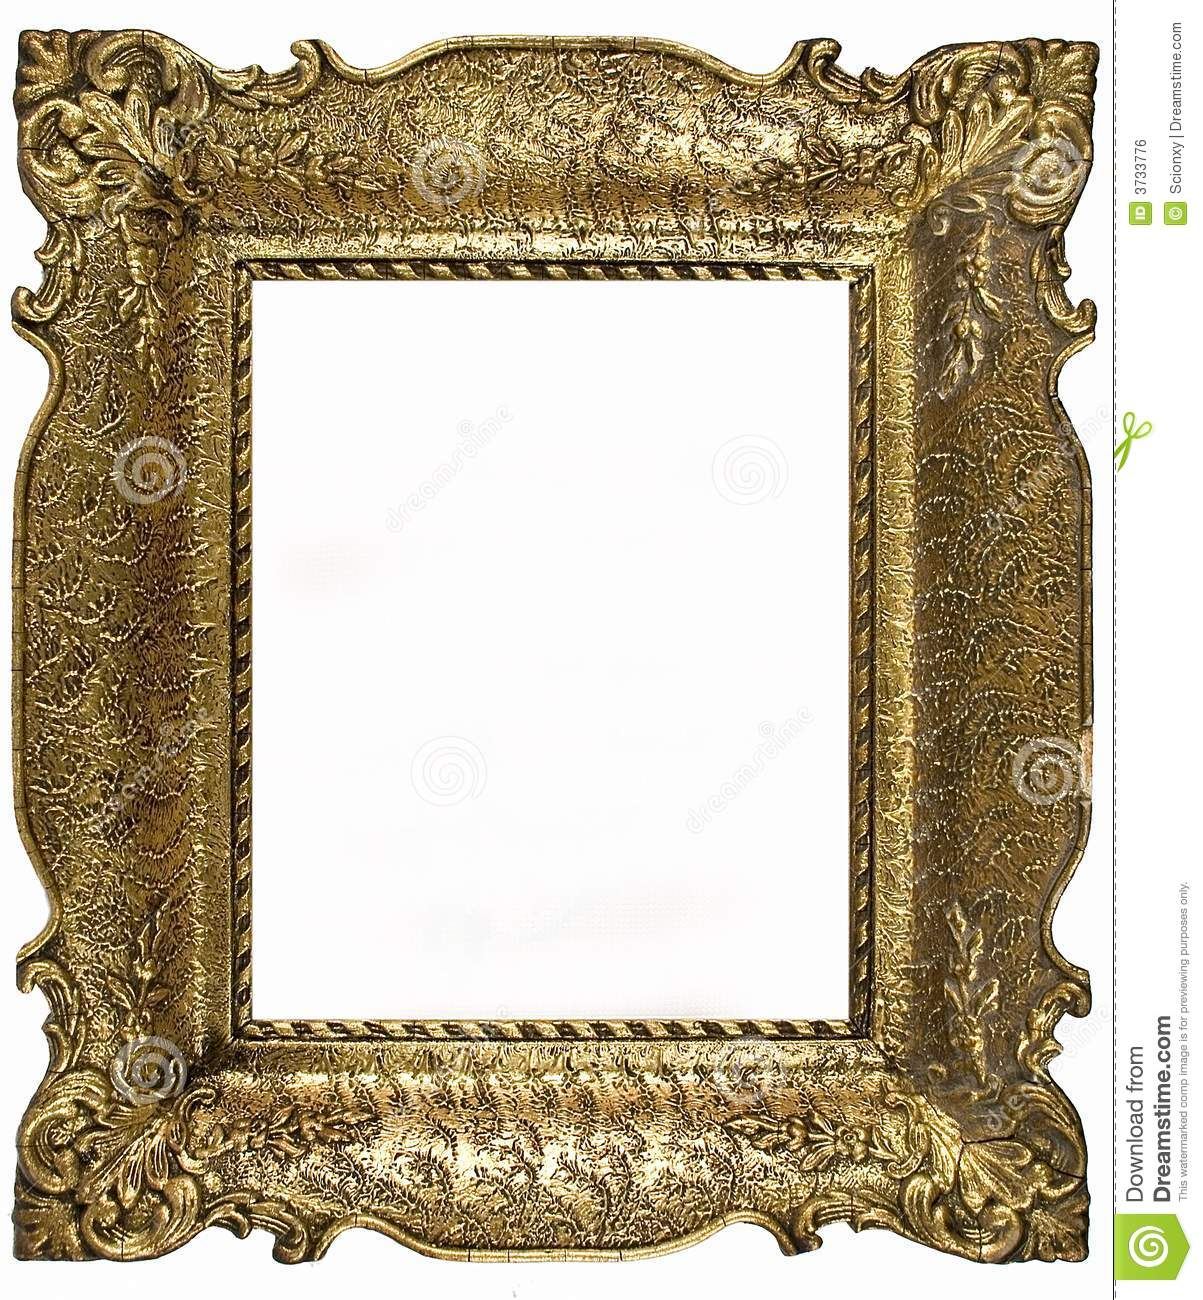 old portrait frame